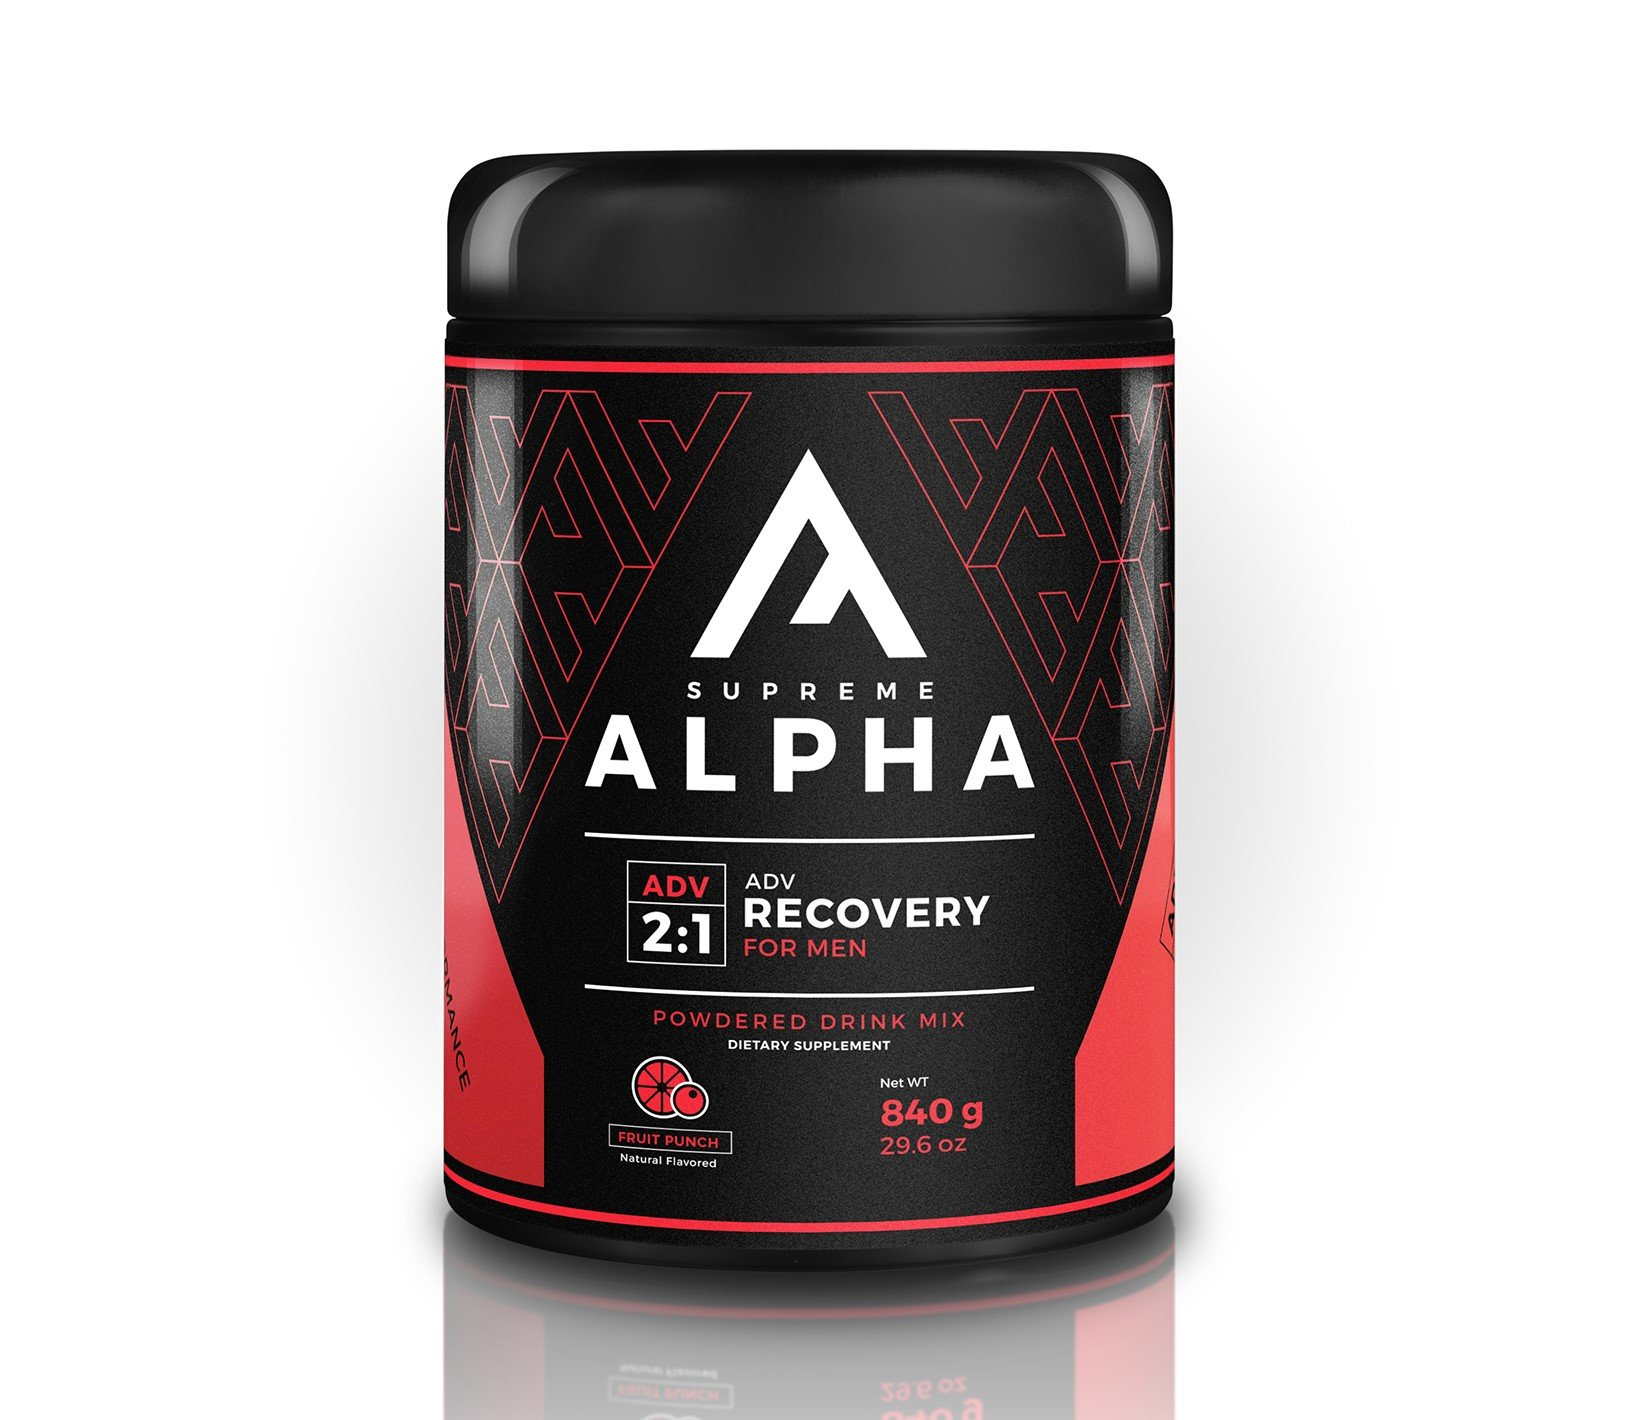 Supreme Alpha Advanced Post Workout Recovery for Men | BCAA's, Glutamine, L-Citruline, Vitamin D | for Healthy Life-Style by Supreme Alpha